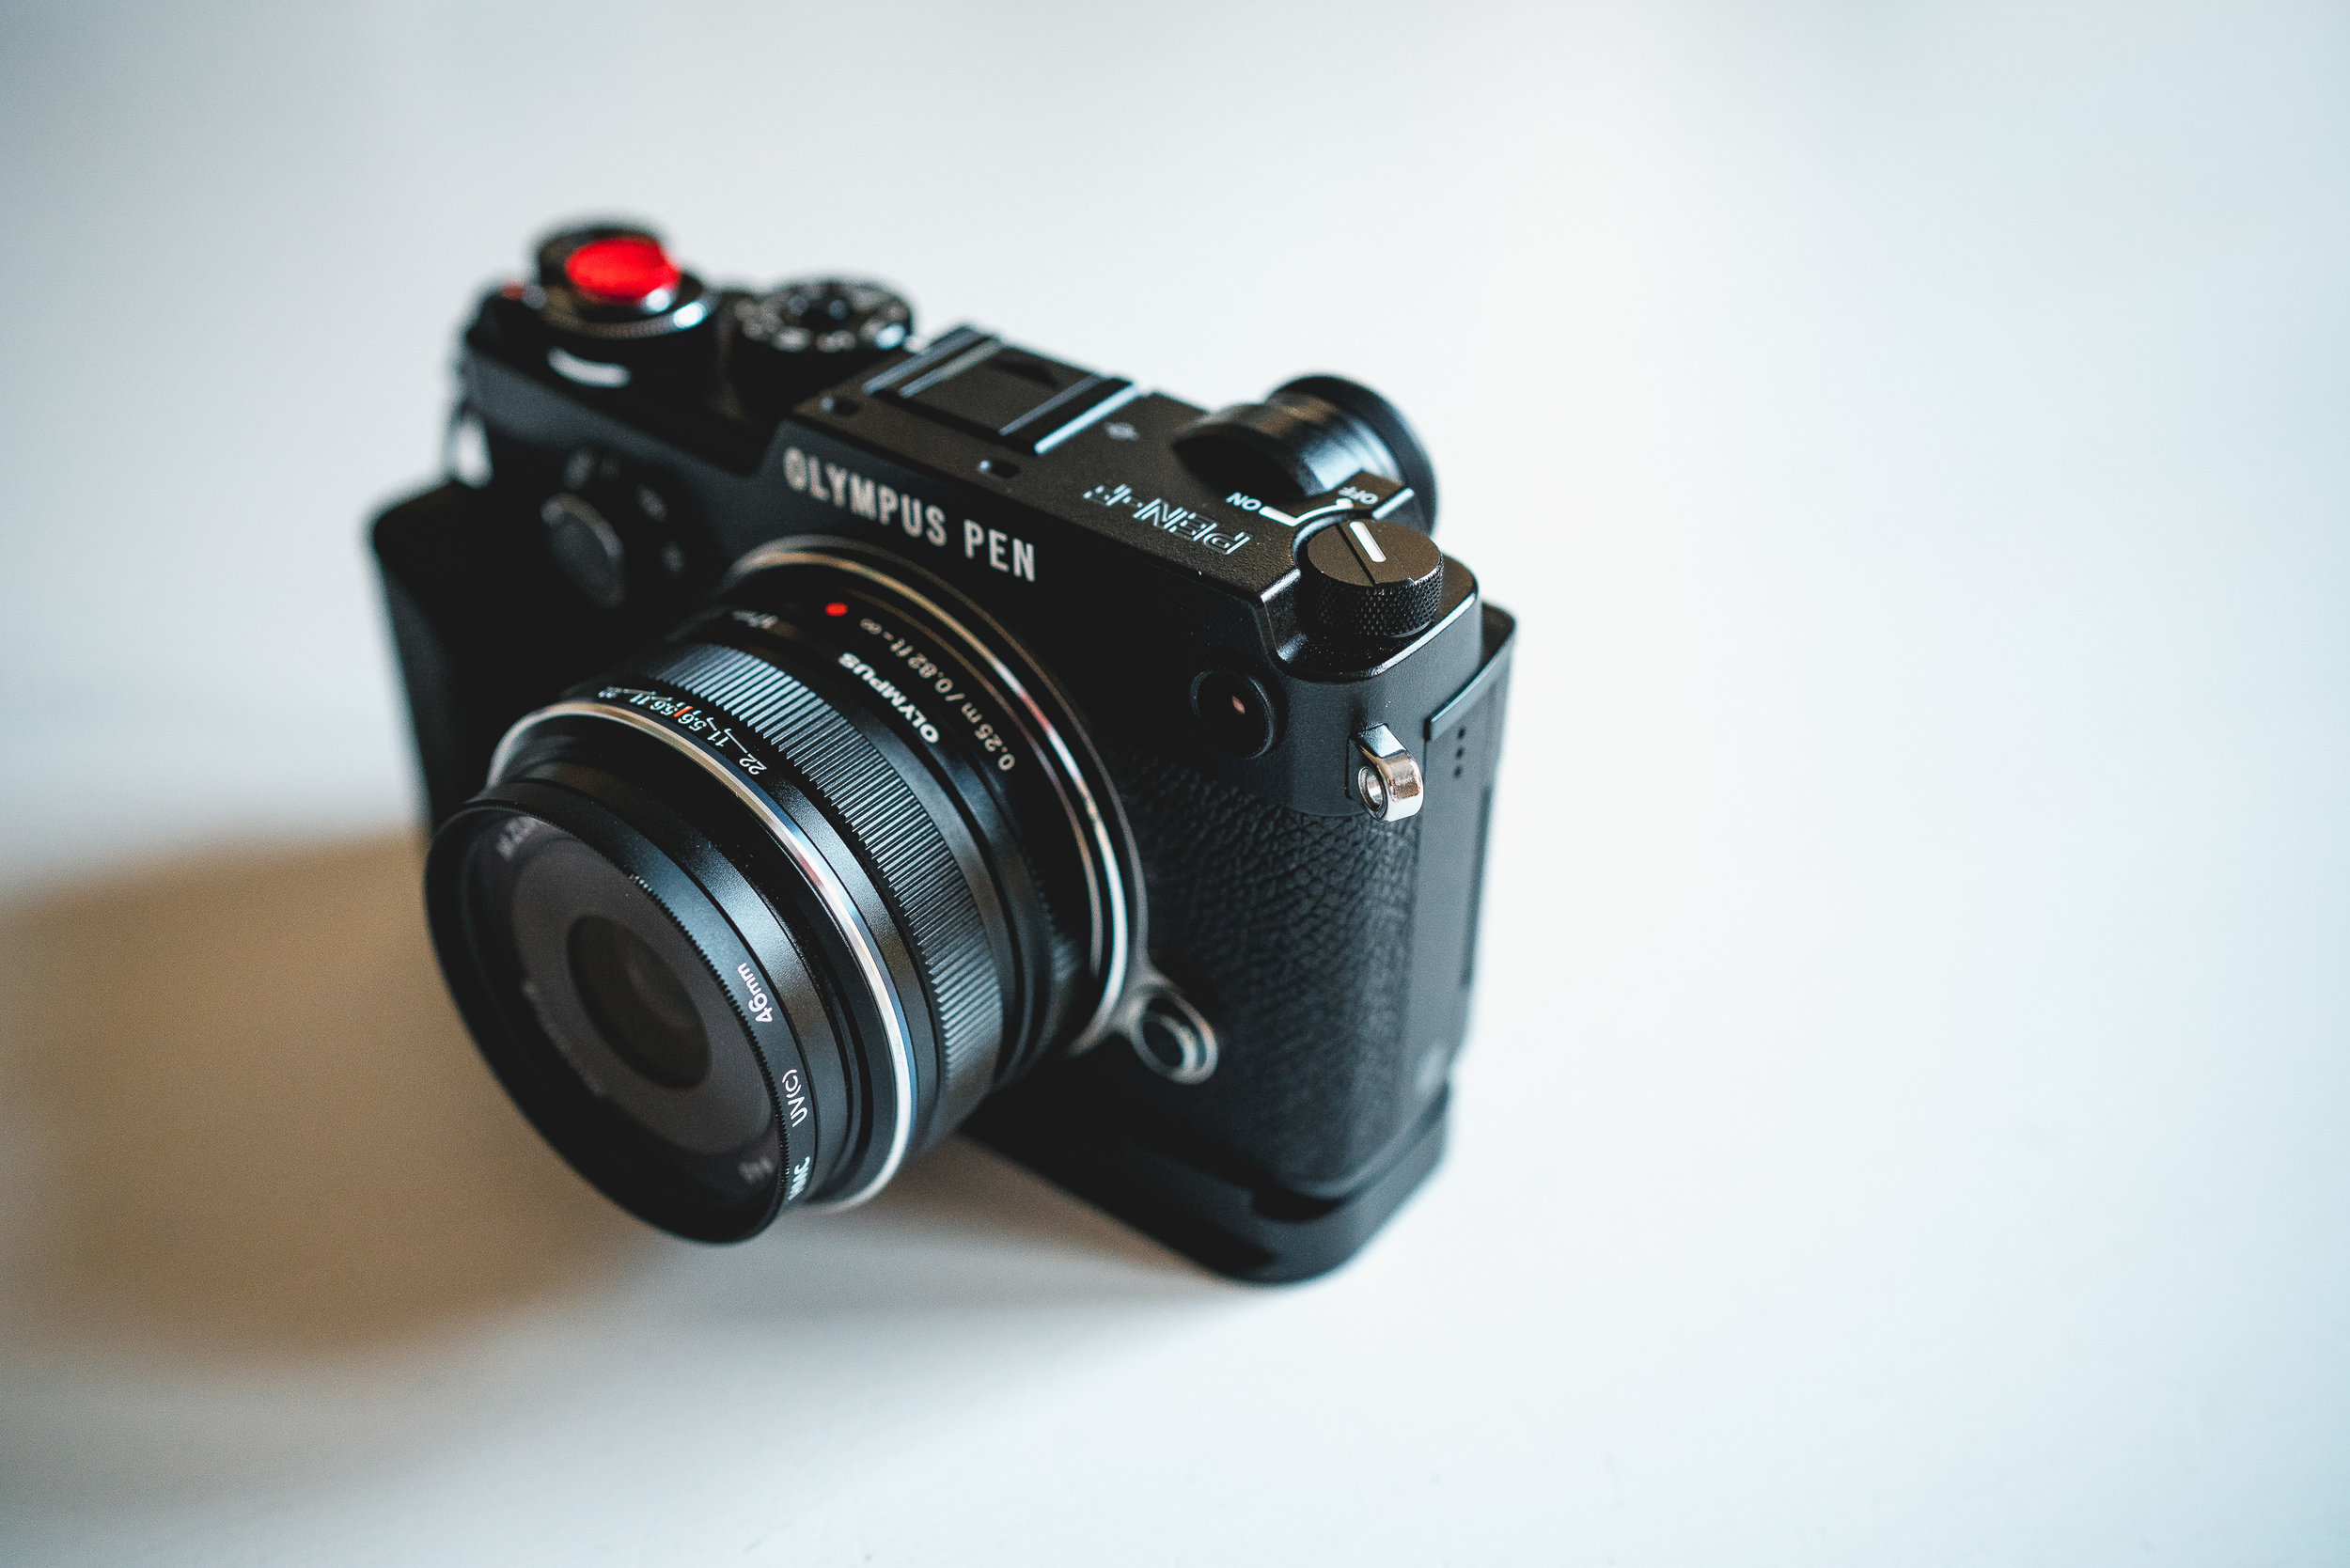 The Olympus Pen F with 17mm f1.8 attached.